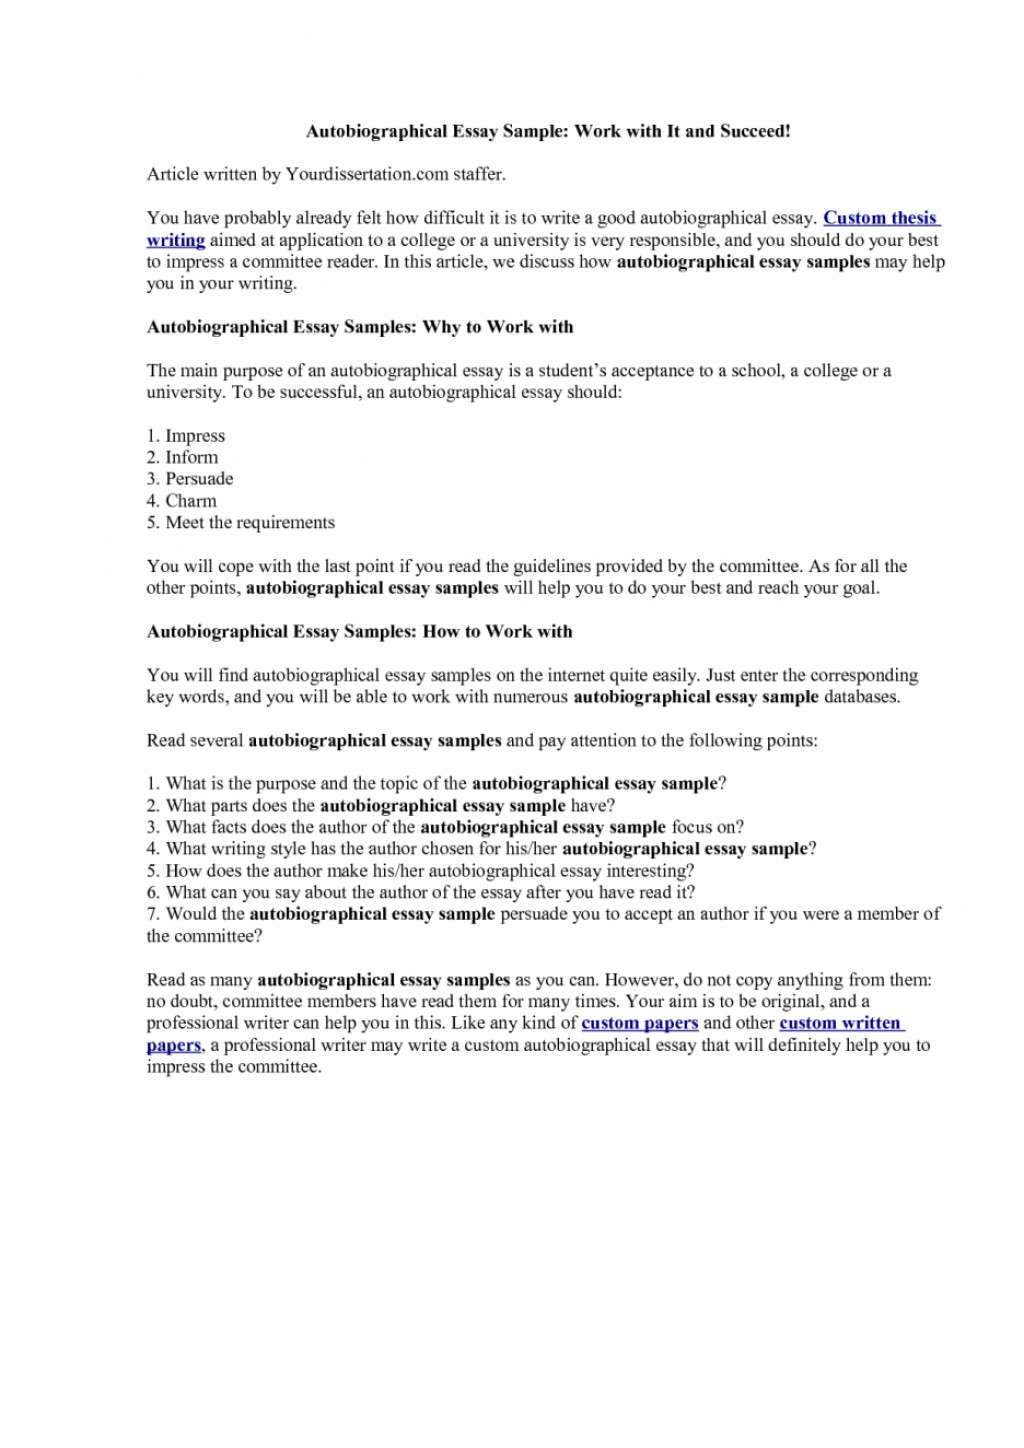 006 How To Start Autobiography Essay Example Autobiographical Examples For College Make Narrative Biographical On Myself Write Yourself Scholarship An Singular Annotated Bibliography A Good Large